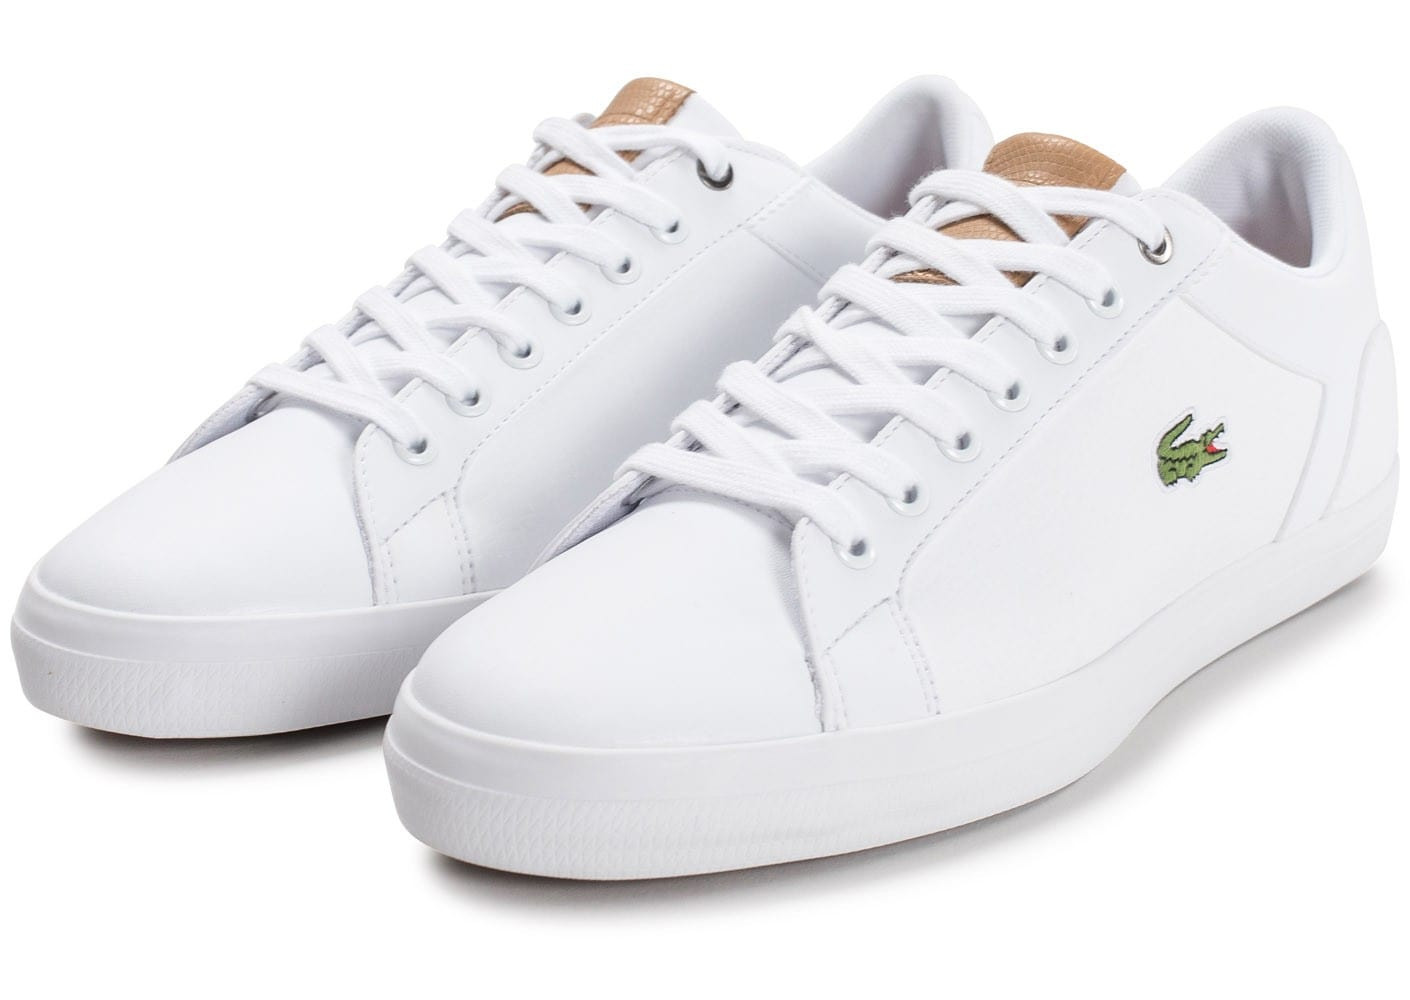 8ae0d3a93c Lacoste Lerond Leather blanche - Chaussures Baskets homme - Chausport